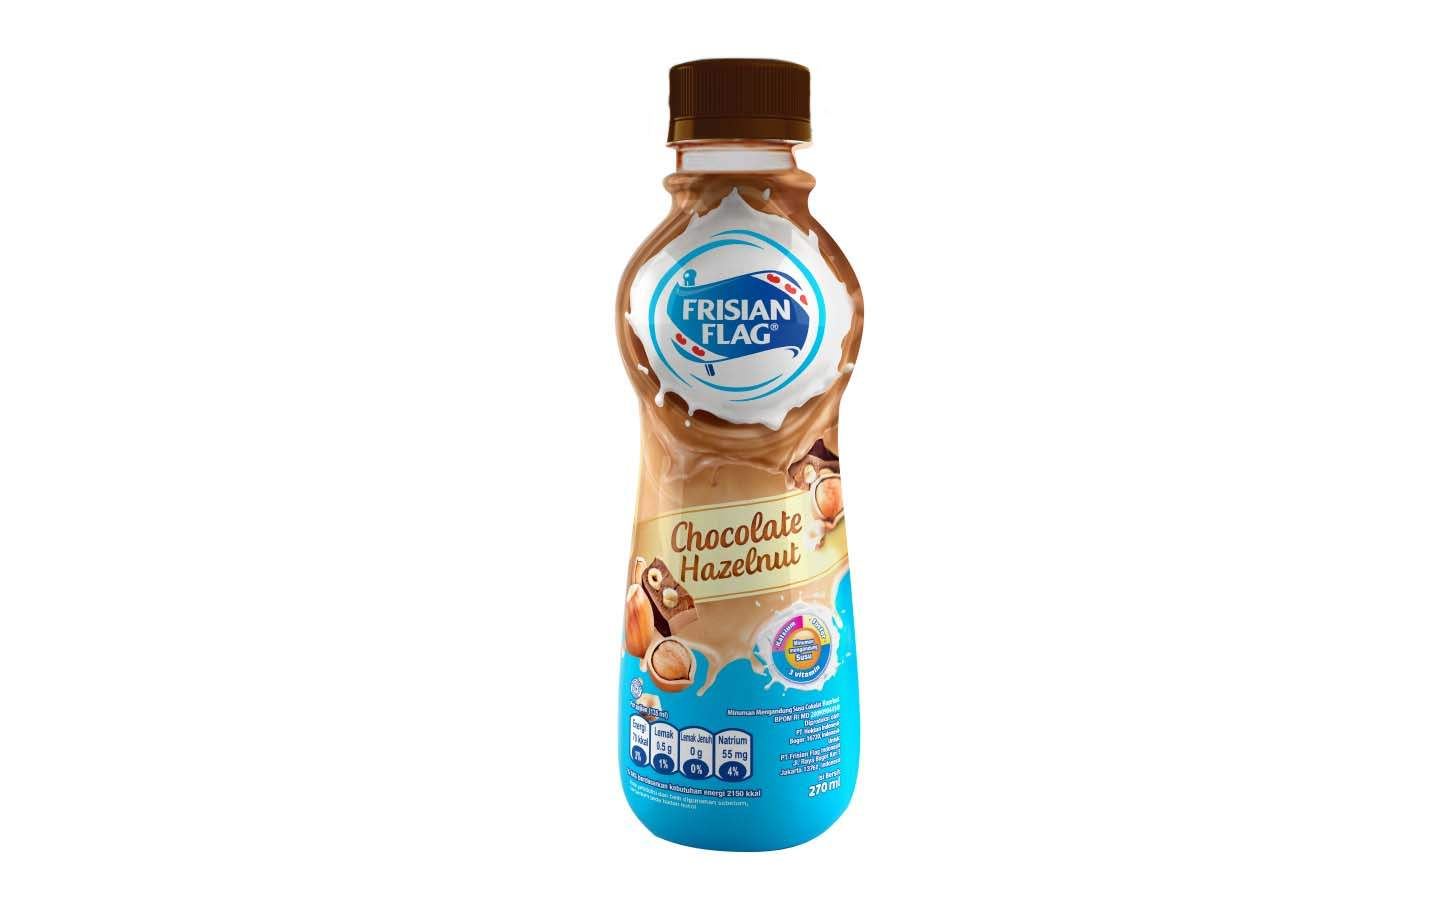 Frisian Flag Chocolate Hazelnut 270ml